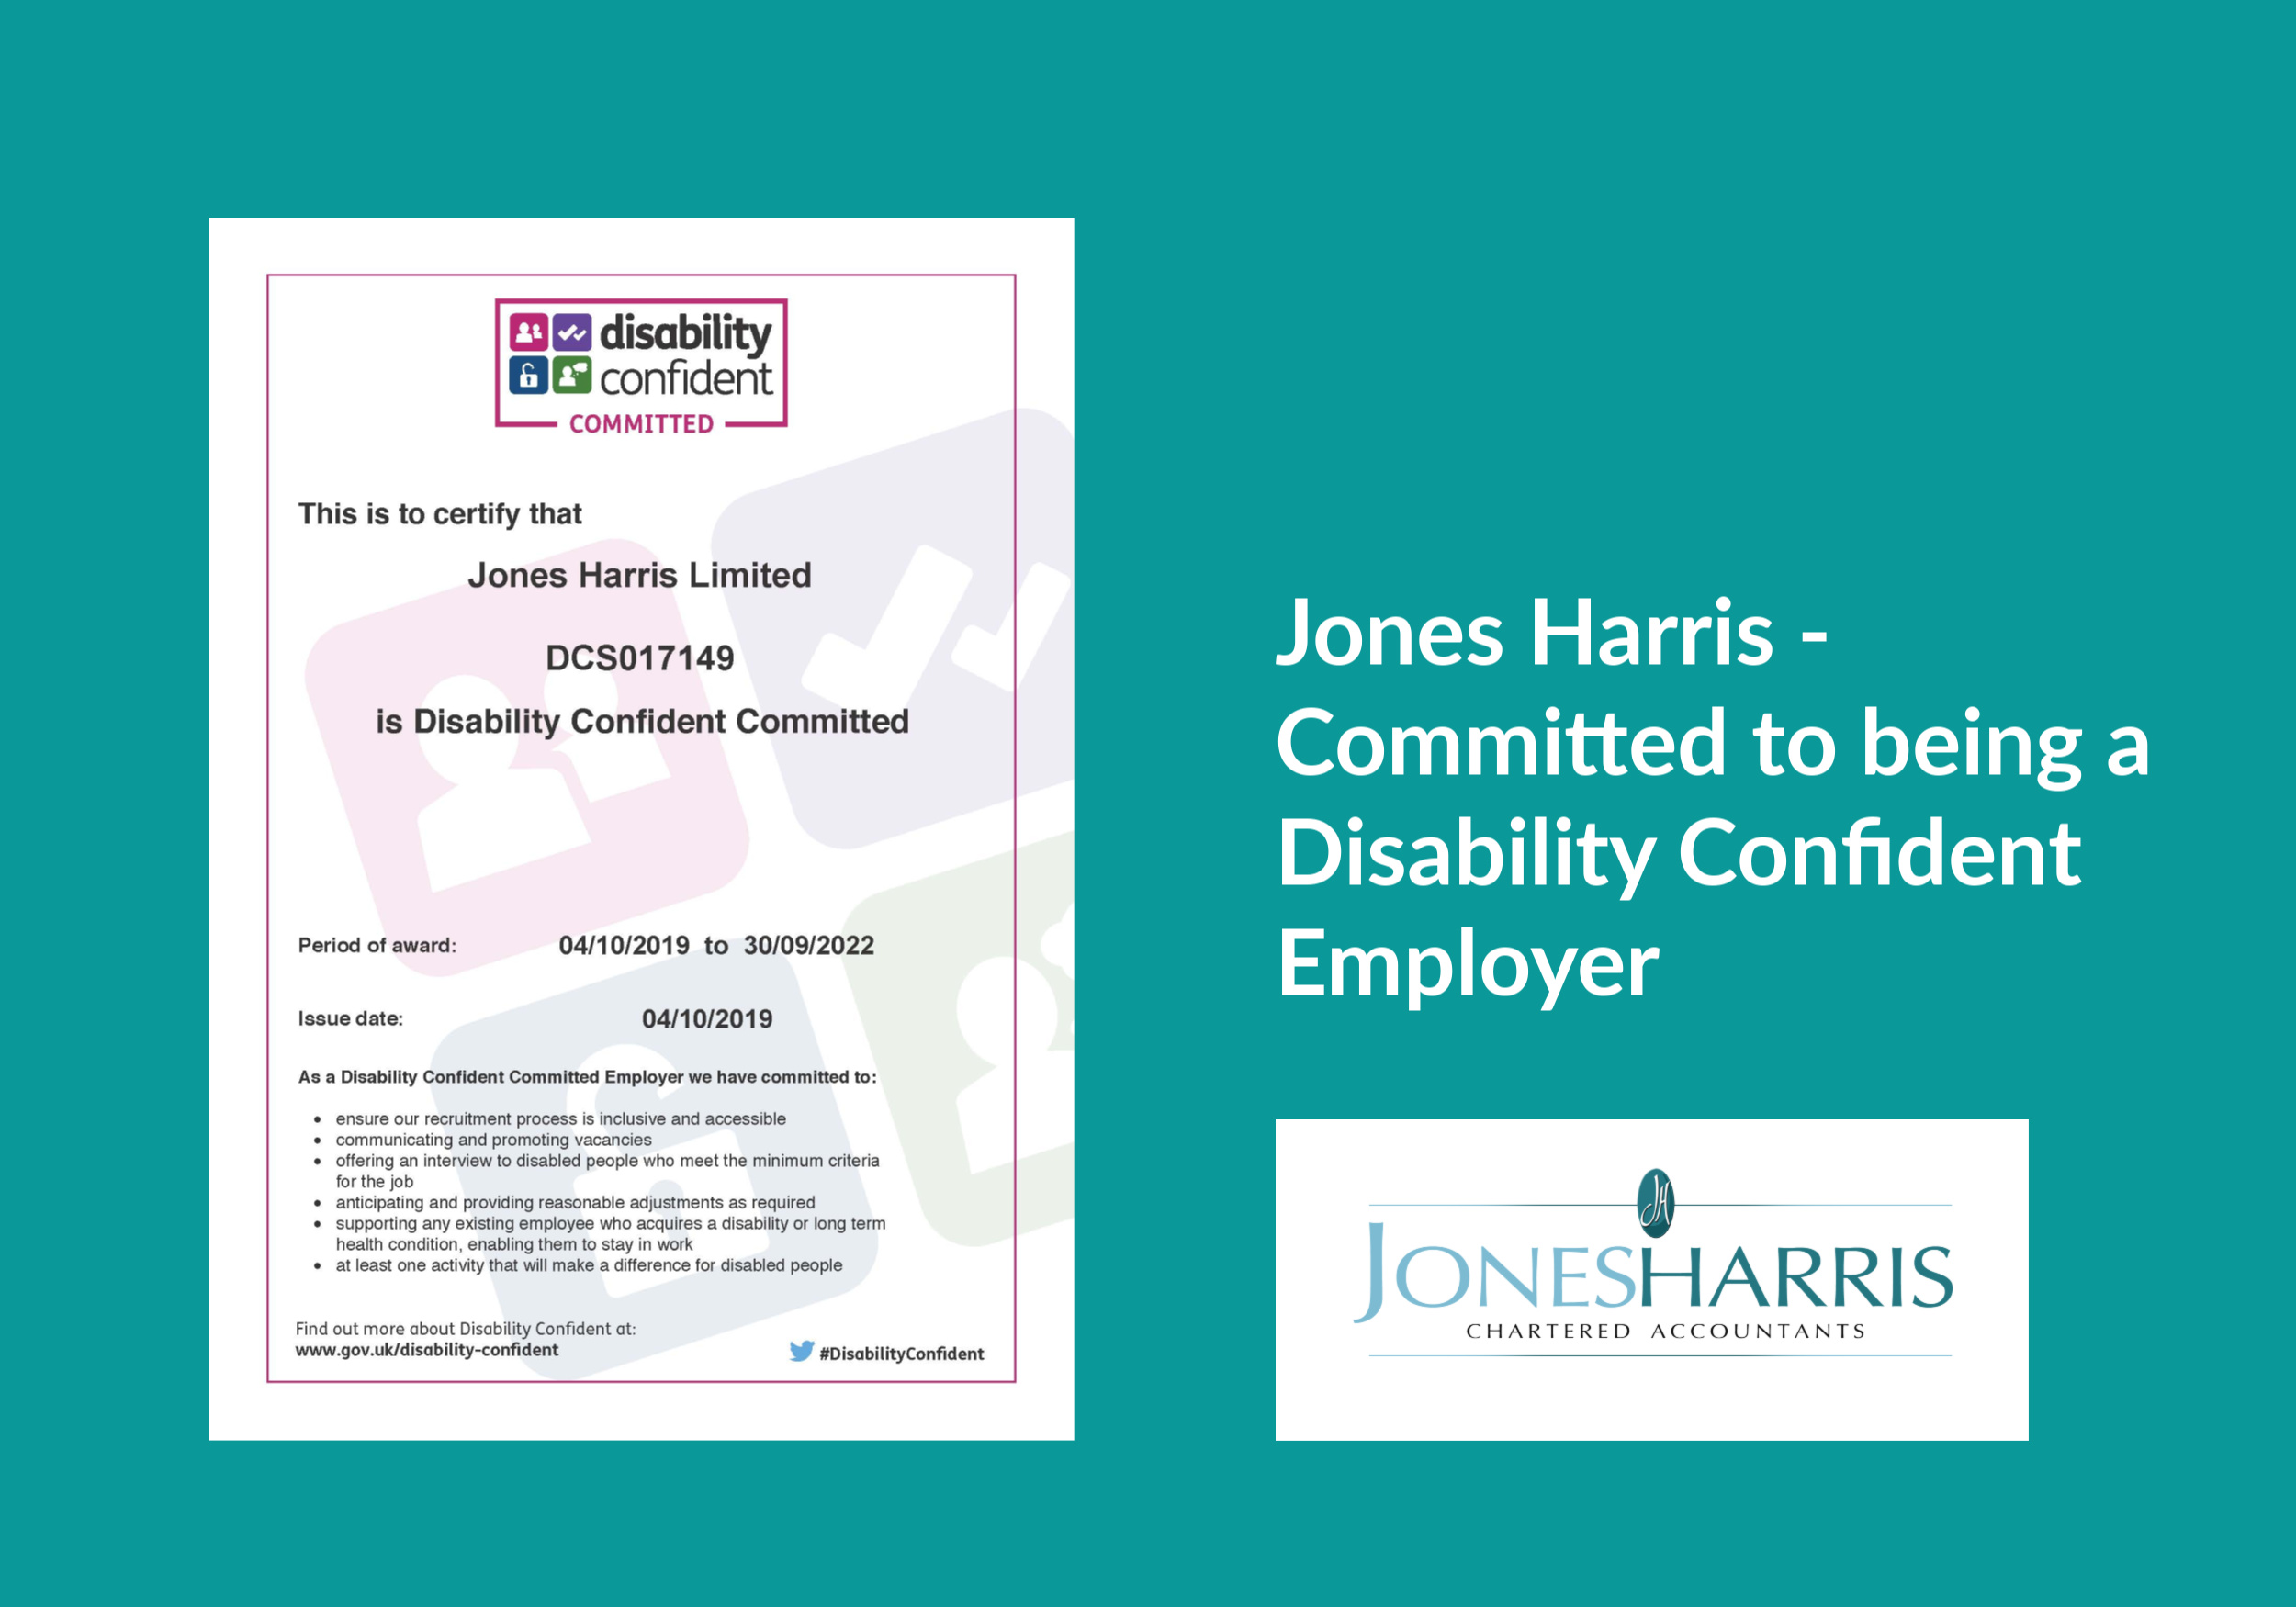 Jones Harris – A Disability Confident Employer